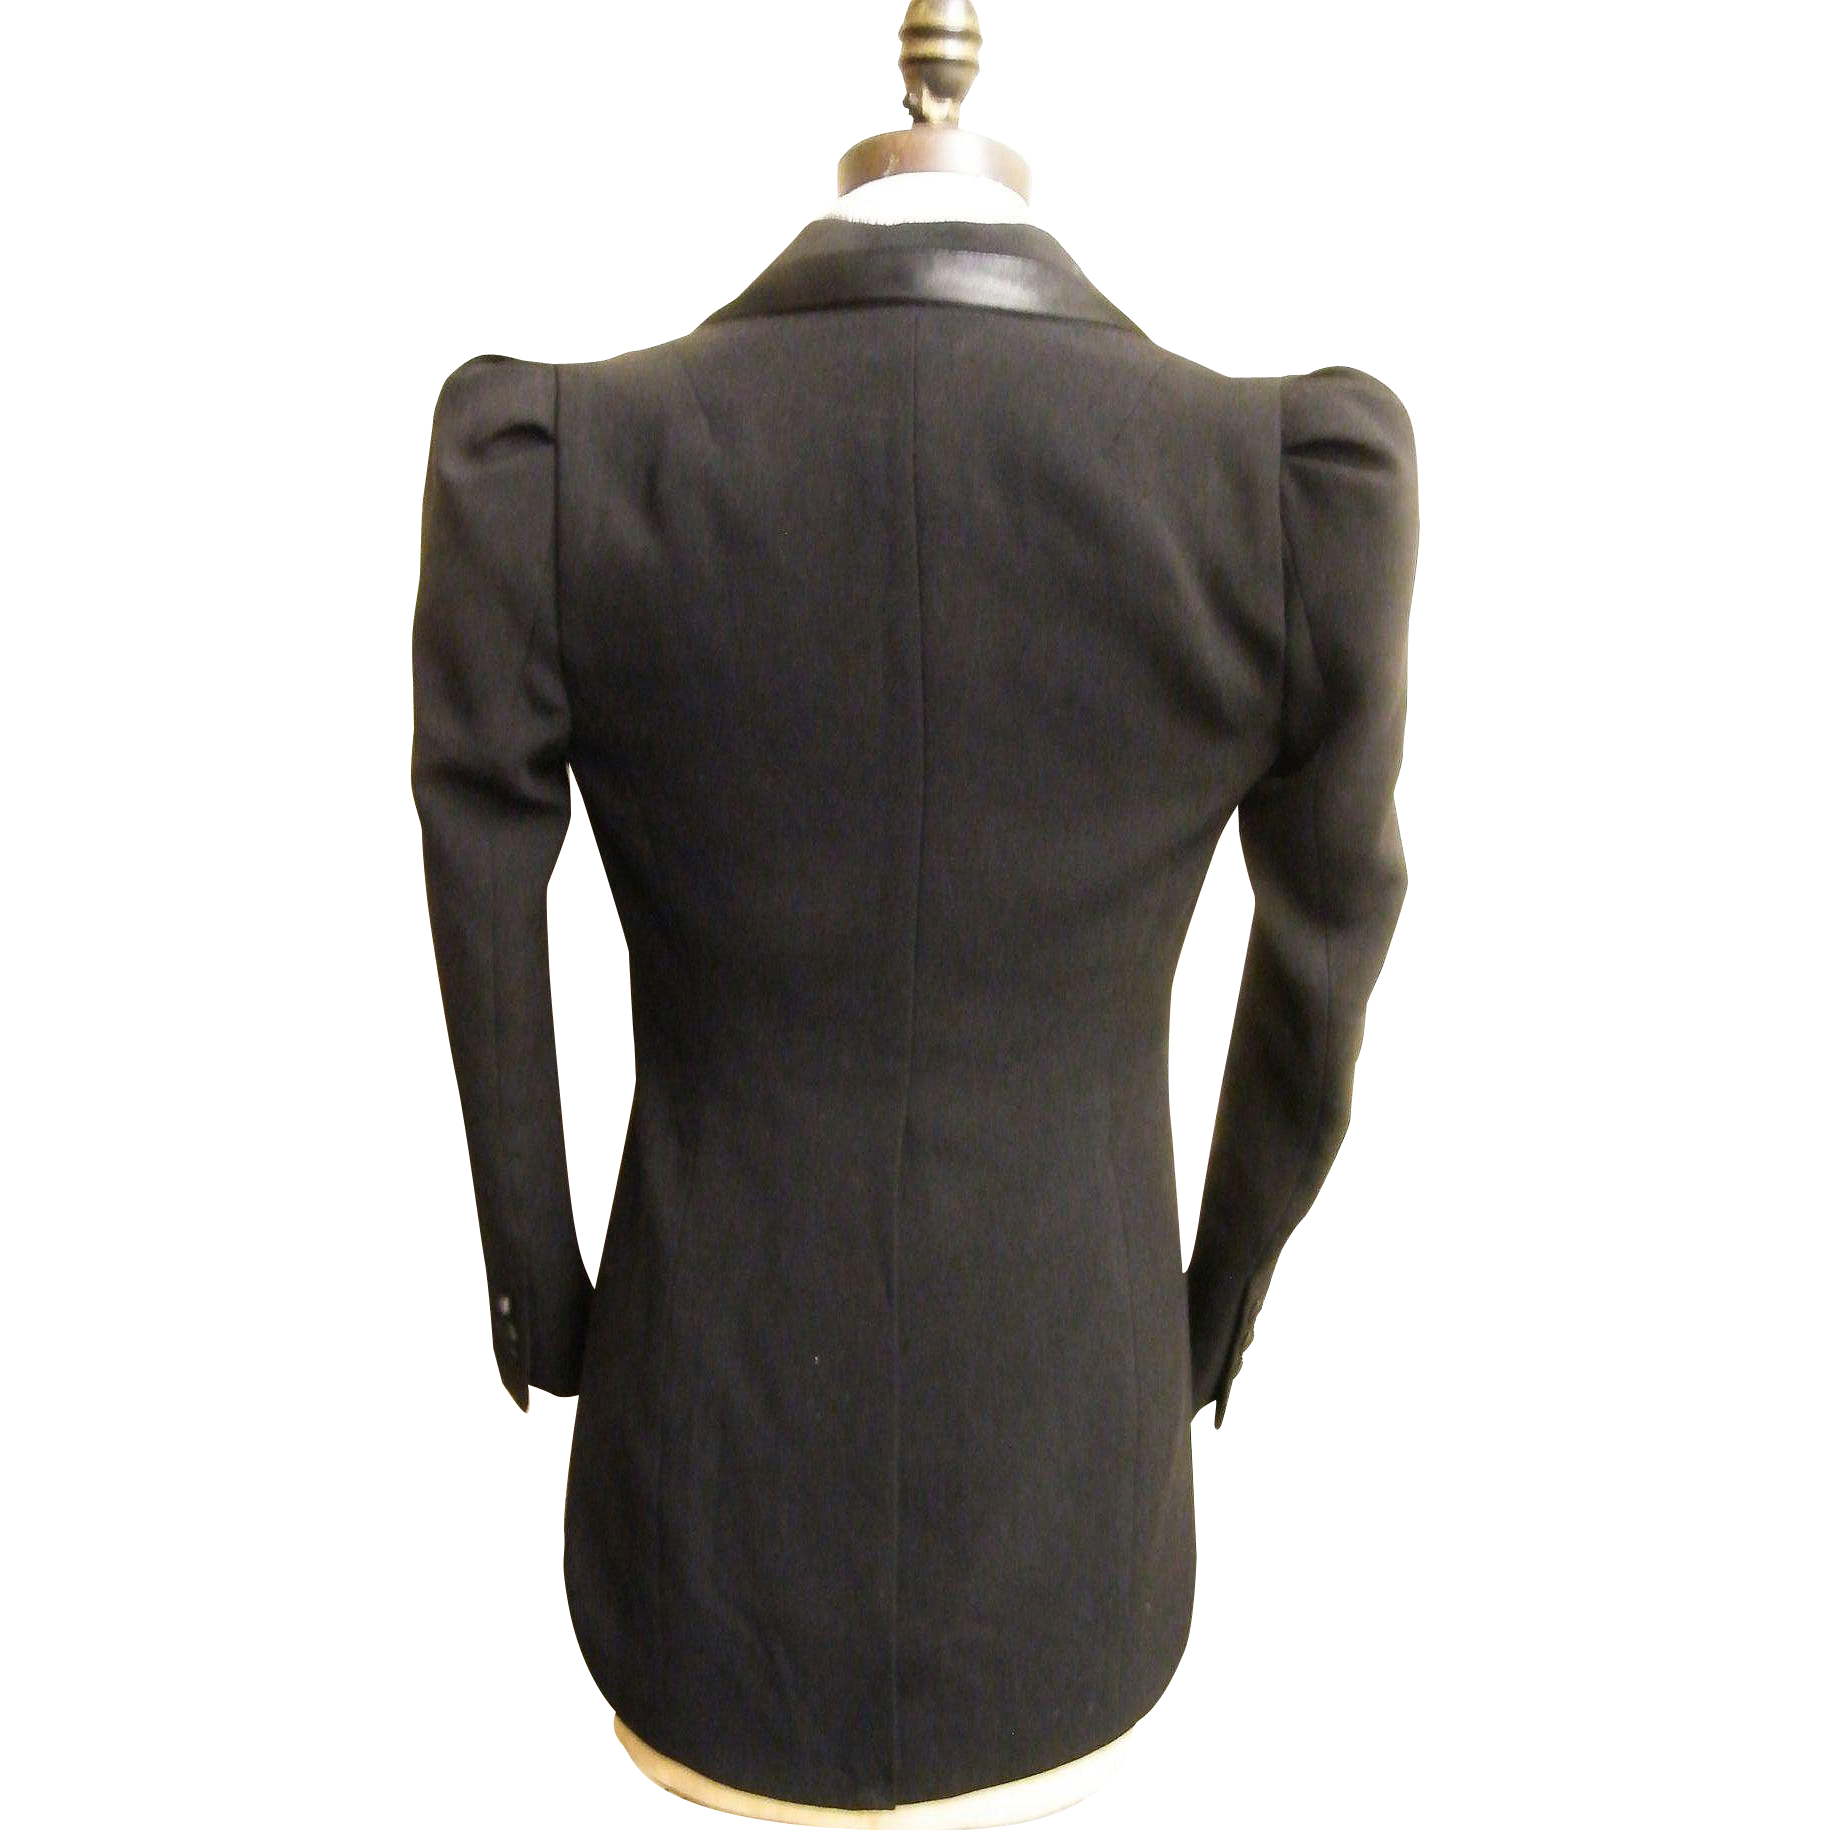 Women's Tuxedo Jacket With Tail...Black...Satin Trim..Robert Rodriguez..Size Small